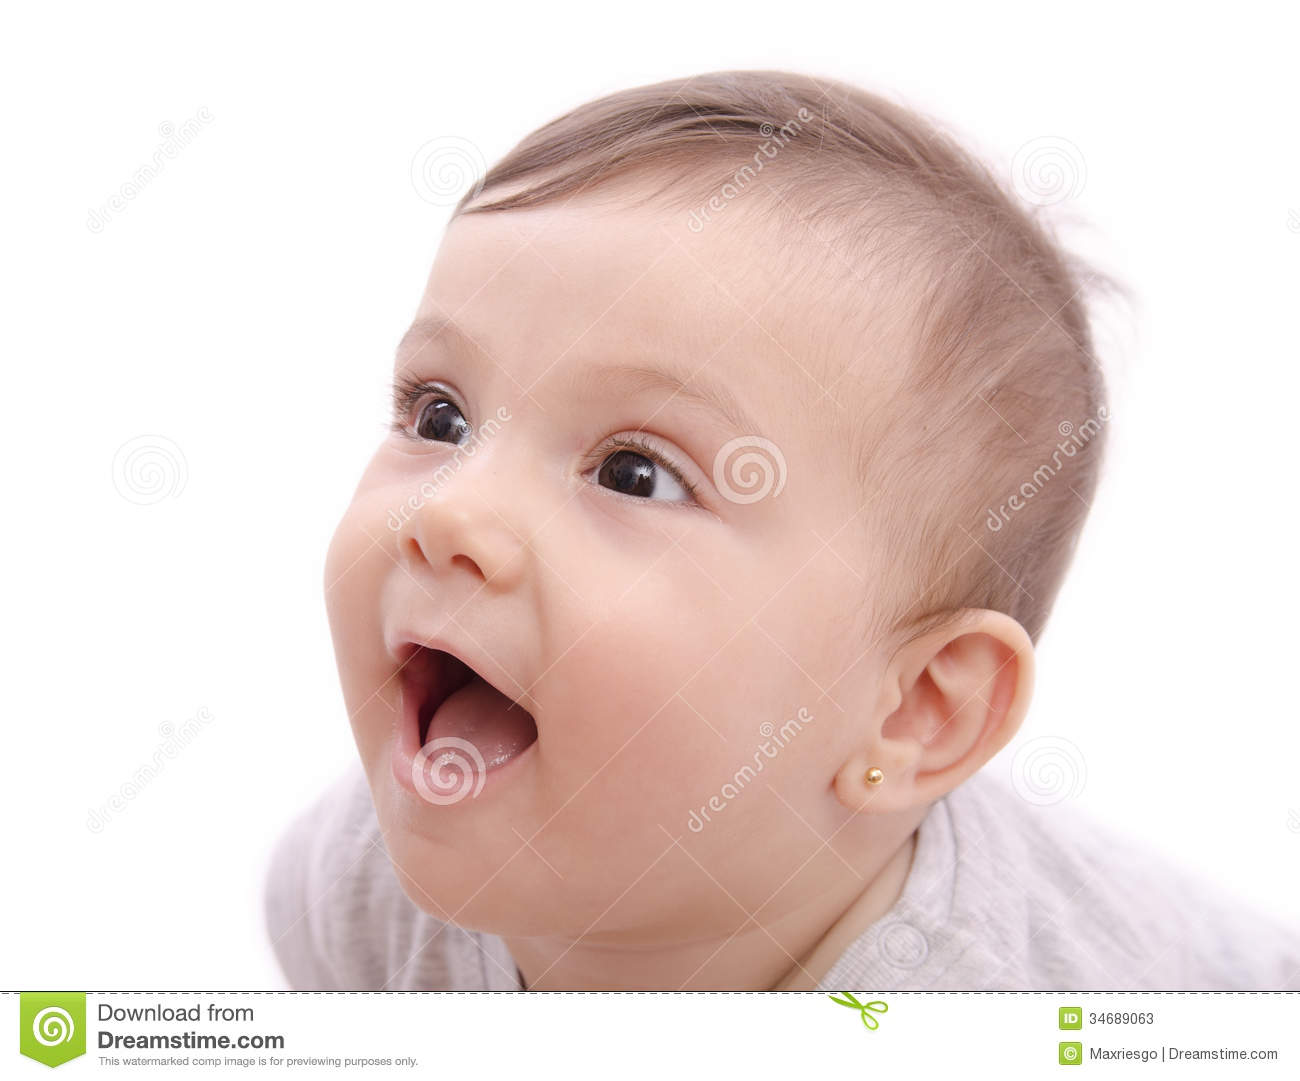 Babies Pictures: Cute Face Babies Pictures | Beautiful ... |Cute Smiling Baby Faces